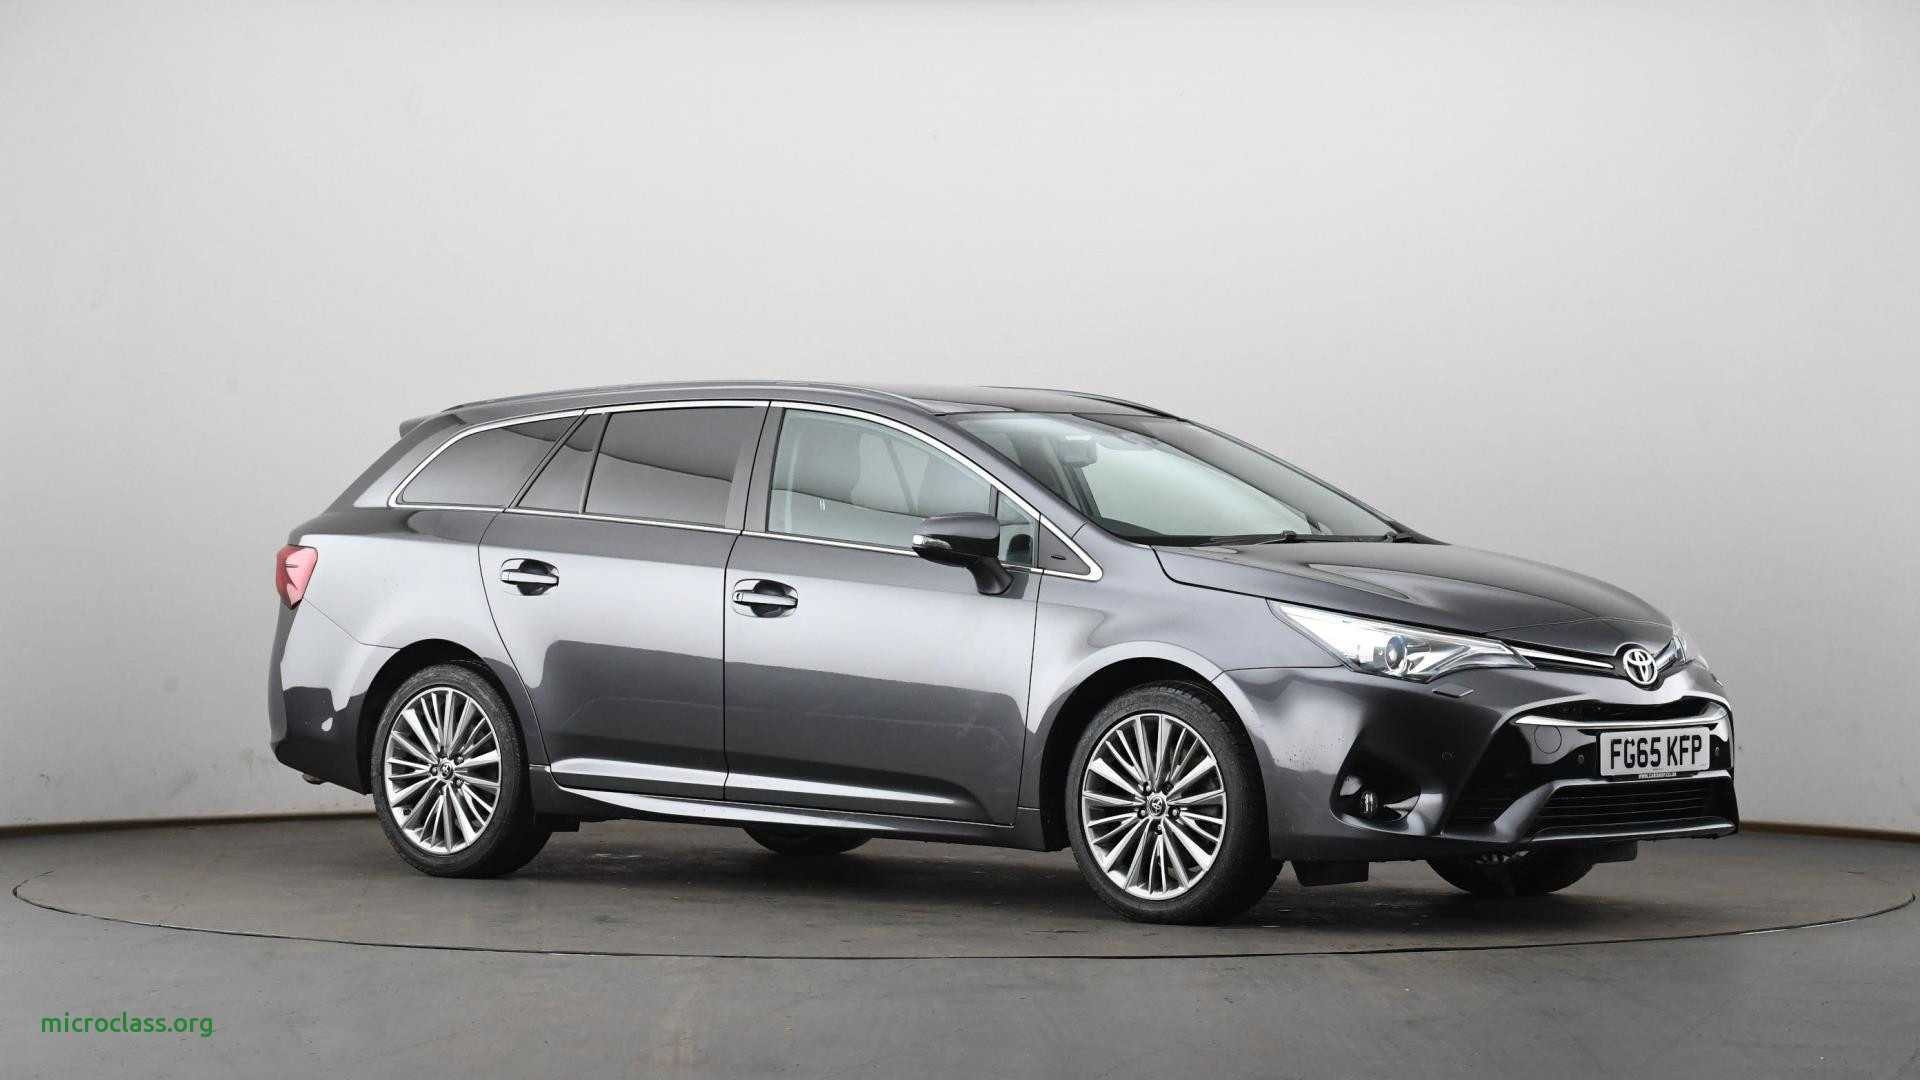 Toyota Auris Modified Unique 2019 toyota Yaris 2019 toyota Mirai Spy Shoot 2019 Jaguar Xf R Sport-1069 Of Unique toyota Auris Modified – 1069